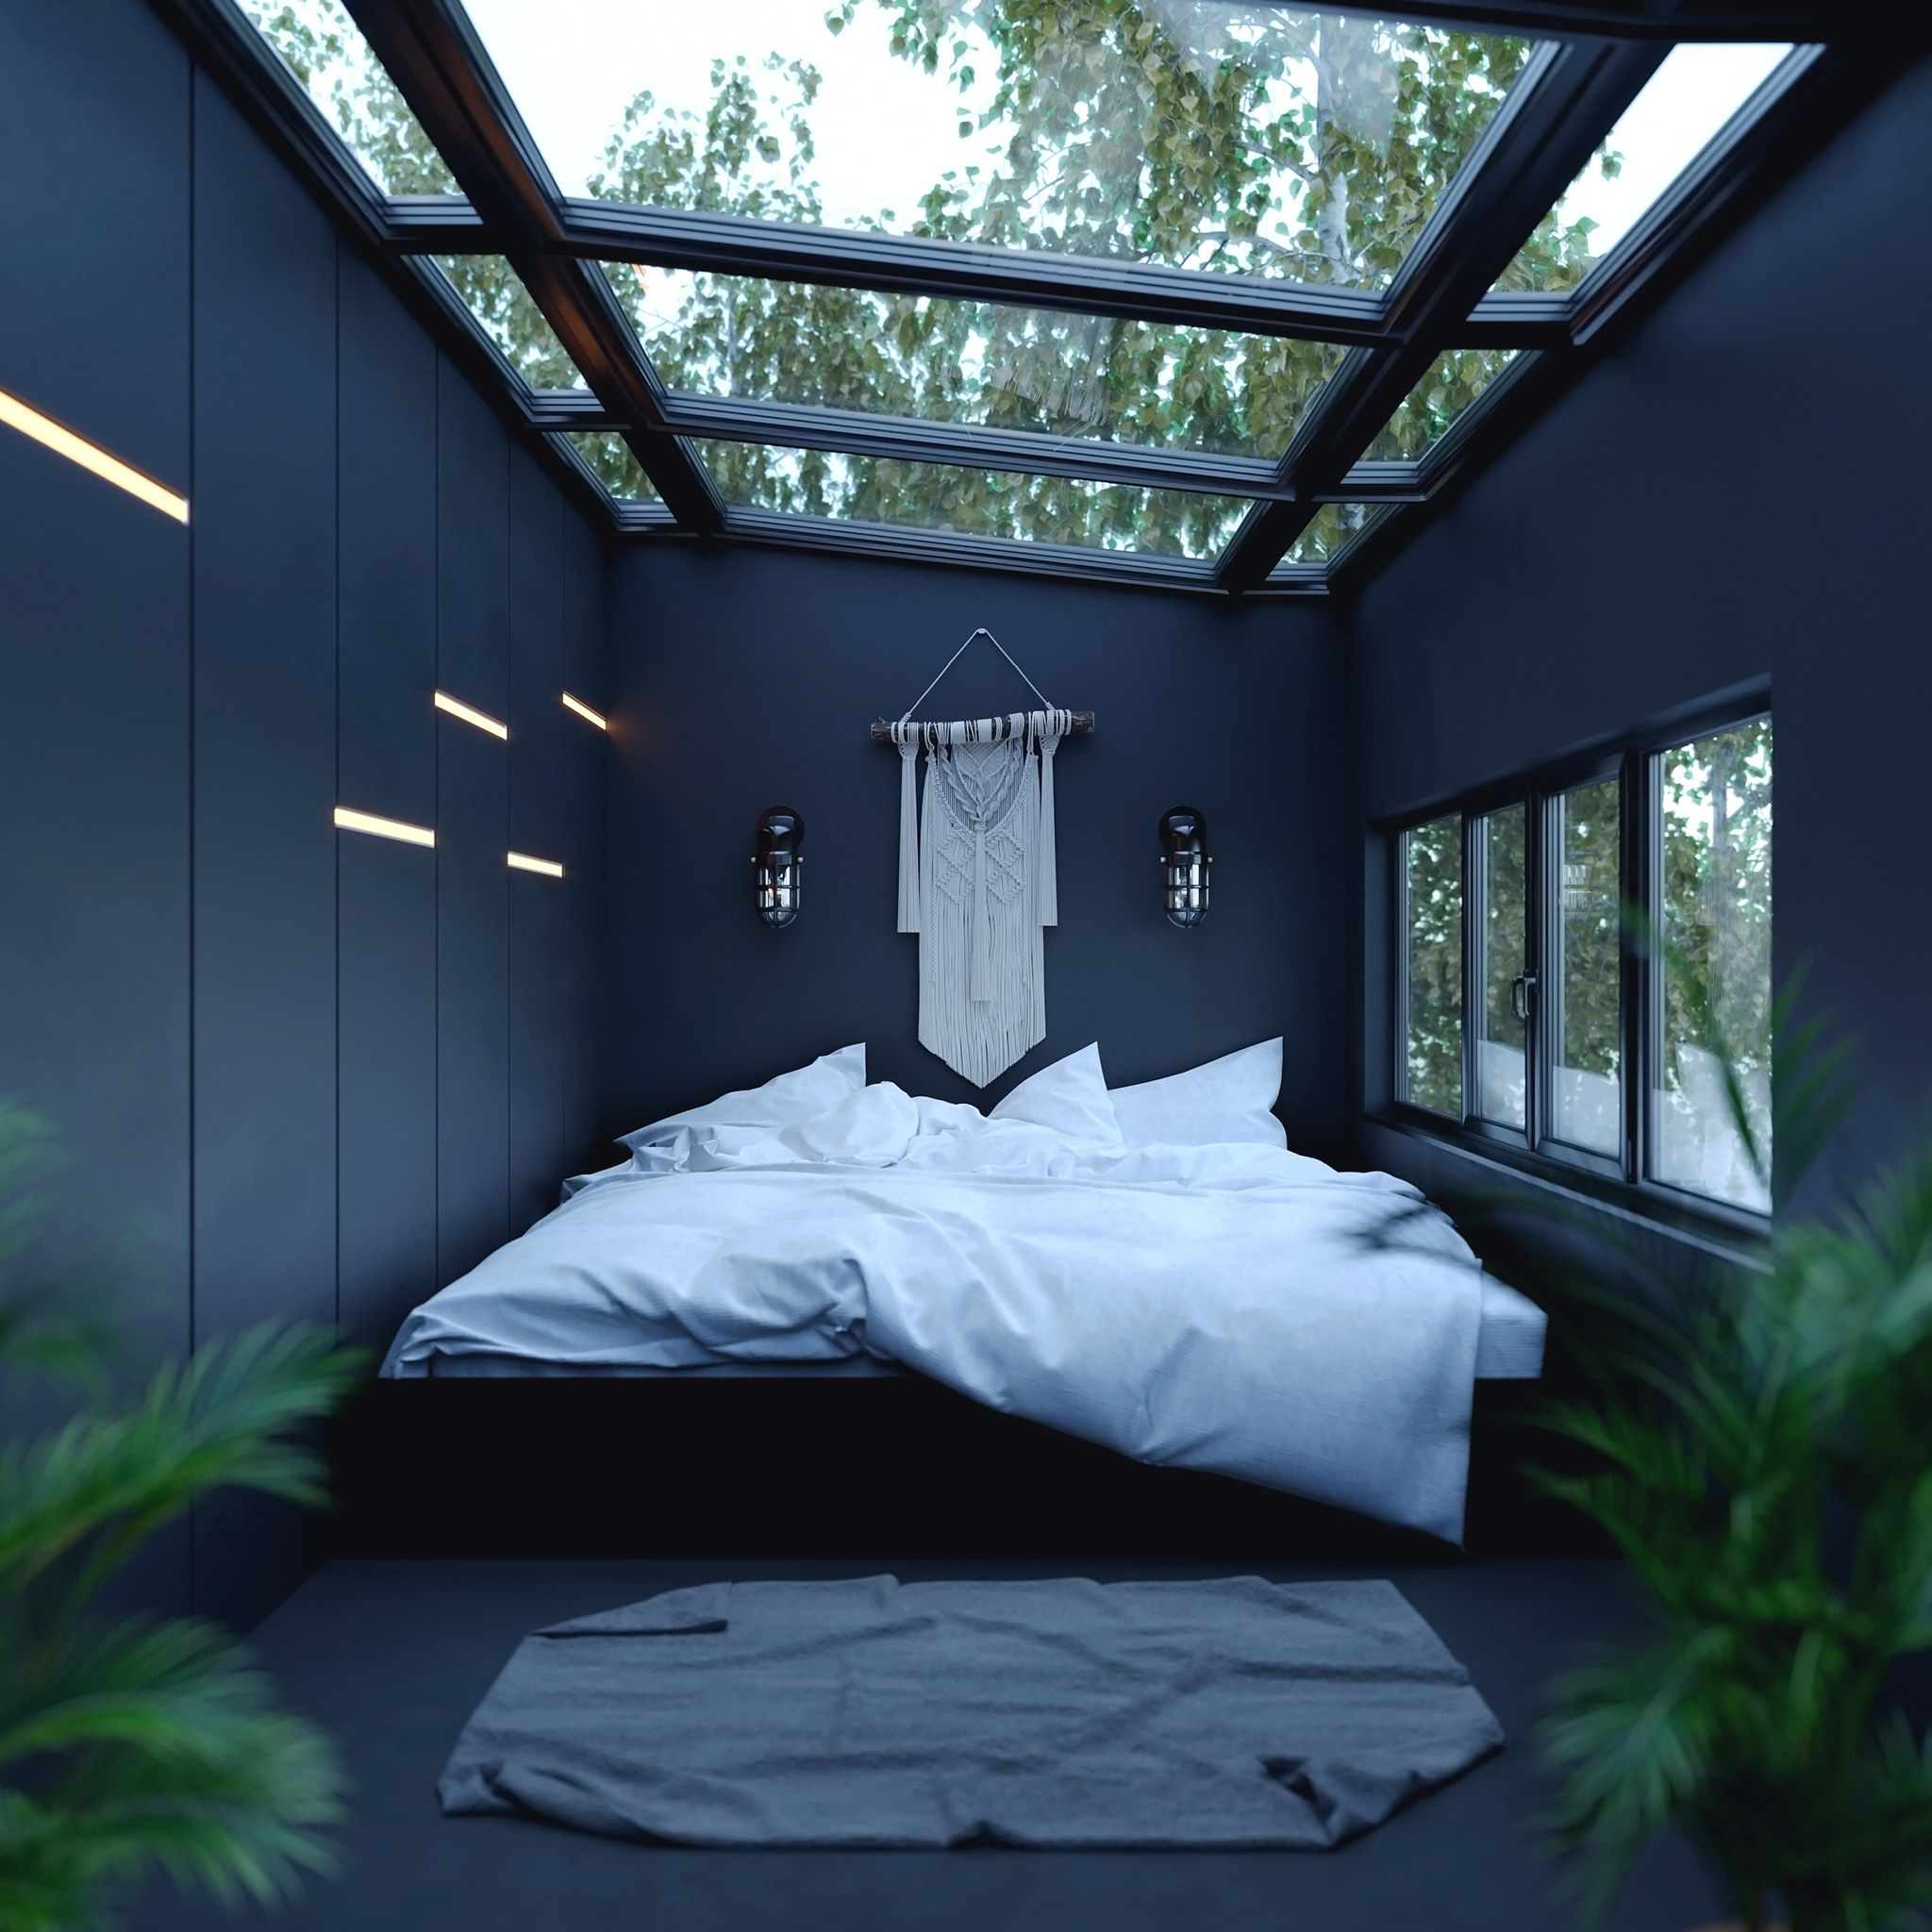 Luxury Bedroom with a View of Nature